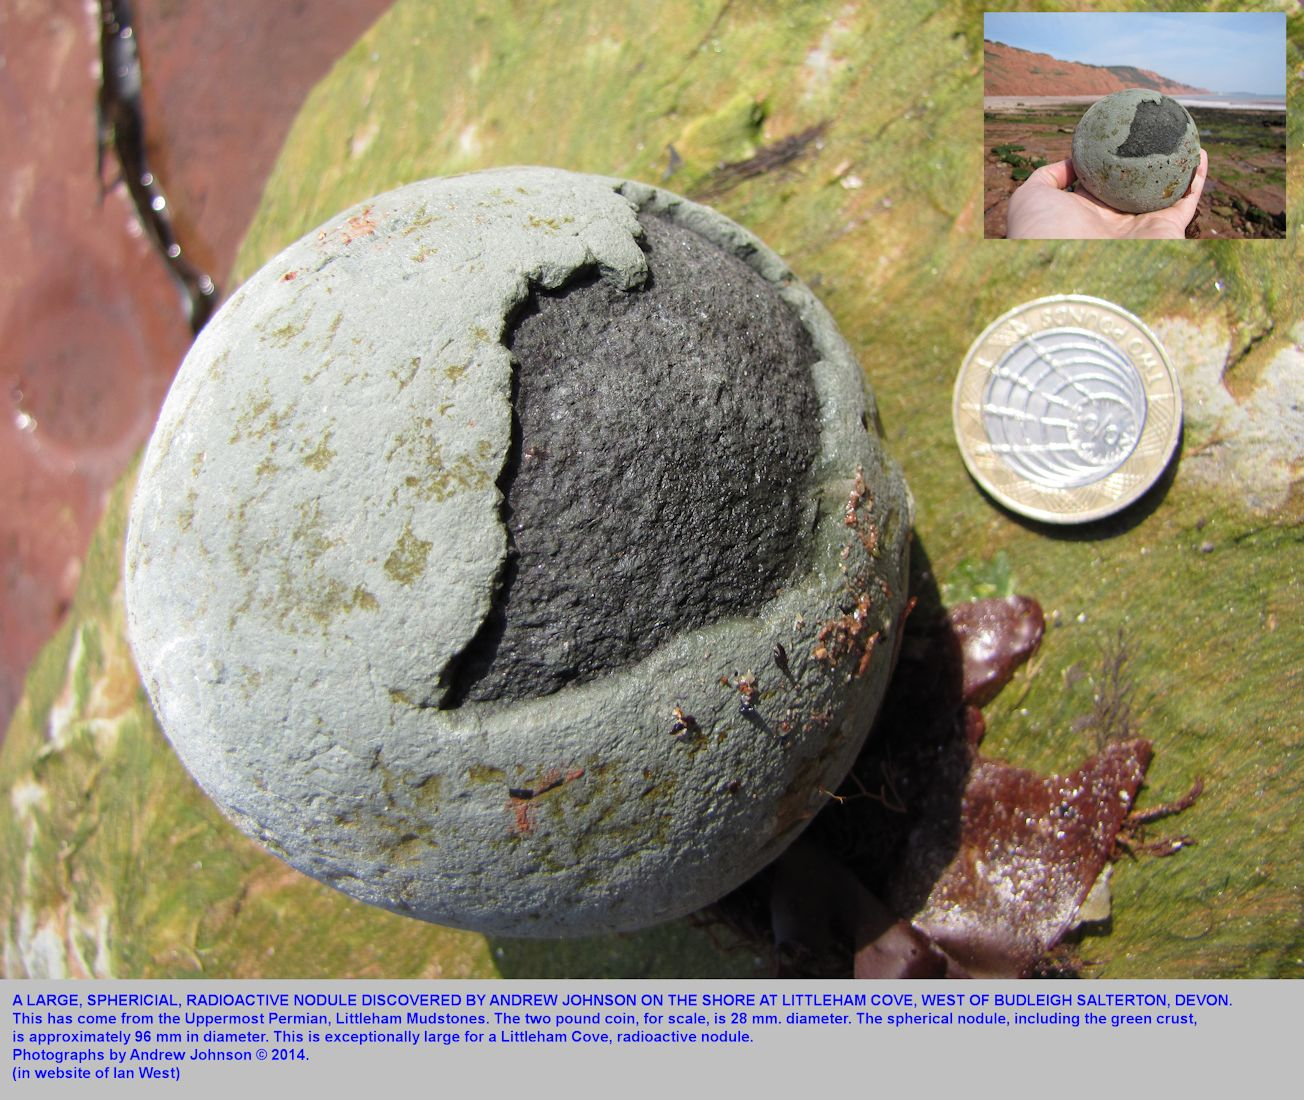 A very large spherical nodule of the dark radioactive type, from the Littleham Mudstones, Littleham Cove, Budleigh Salterton, Devon, found by Andrew Johnson, April 2014